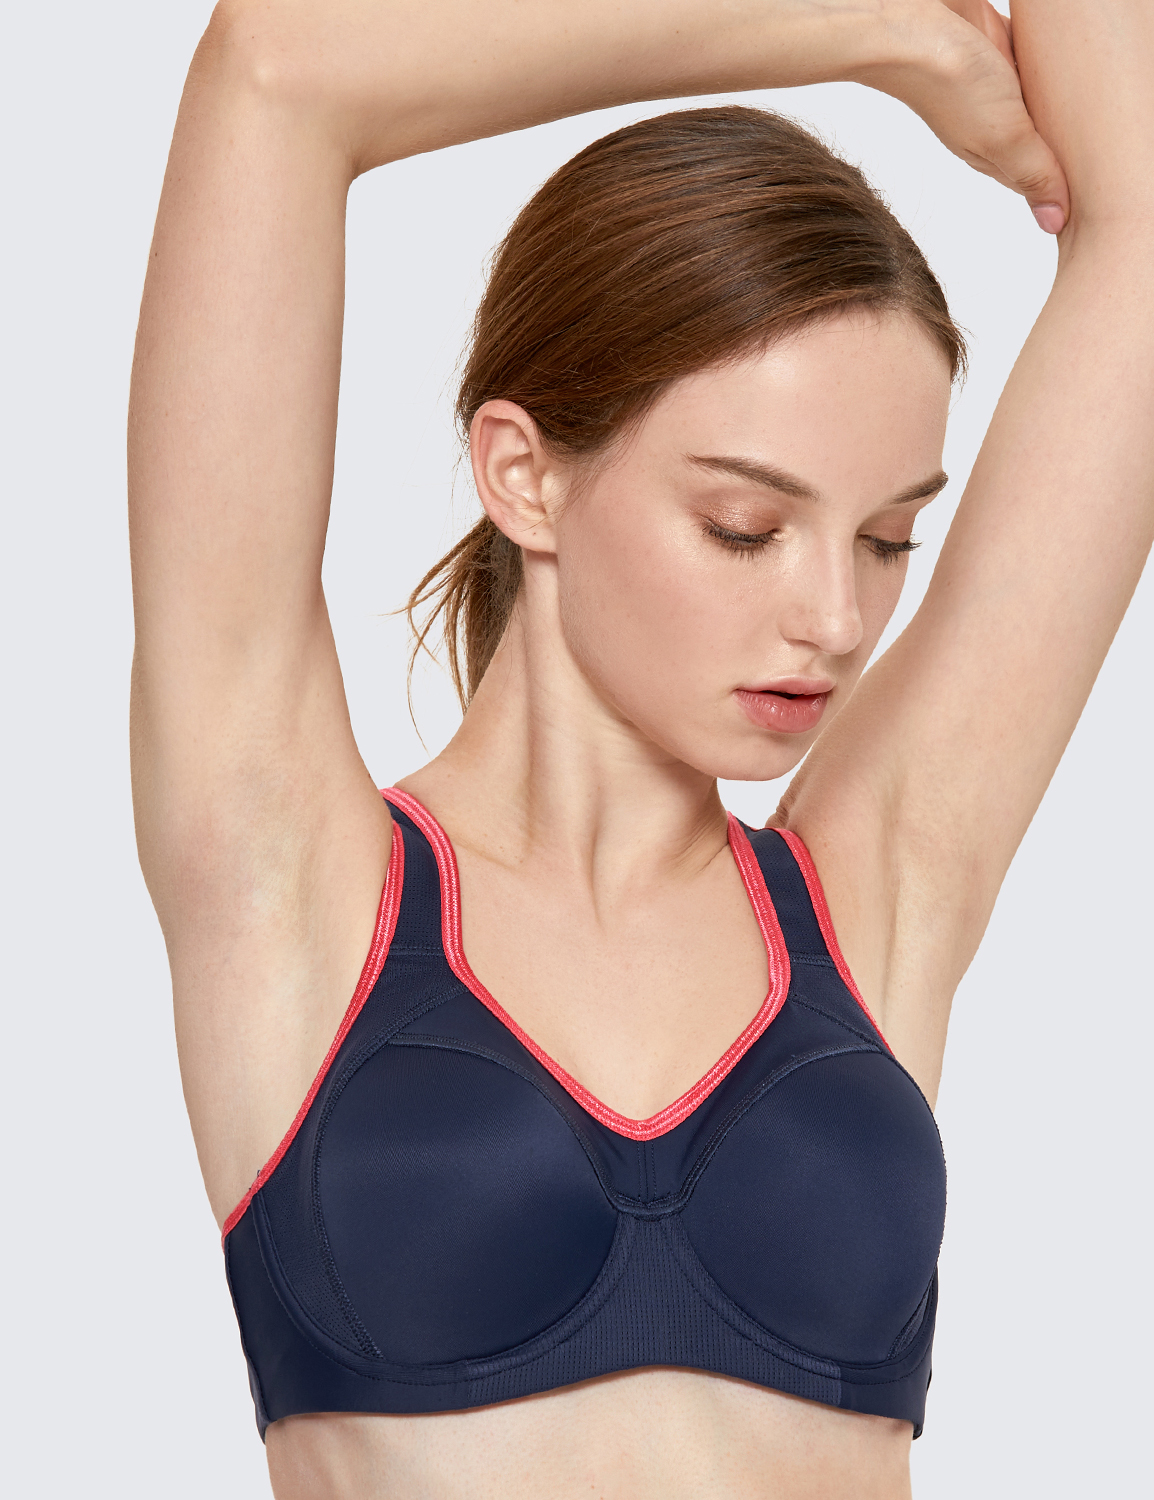 SYROKAN Womens Full Support Racerback Lightly Lined Underwire Sports Bra